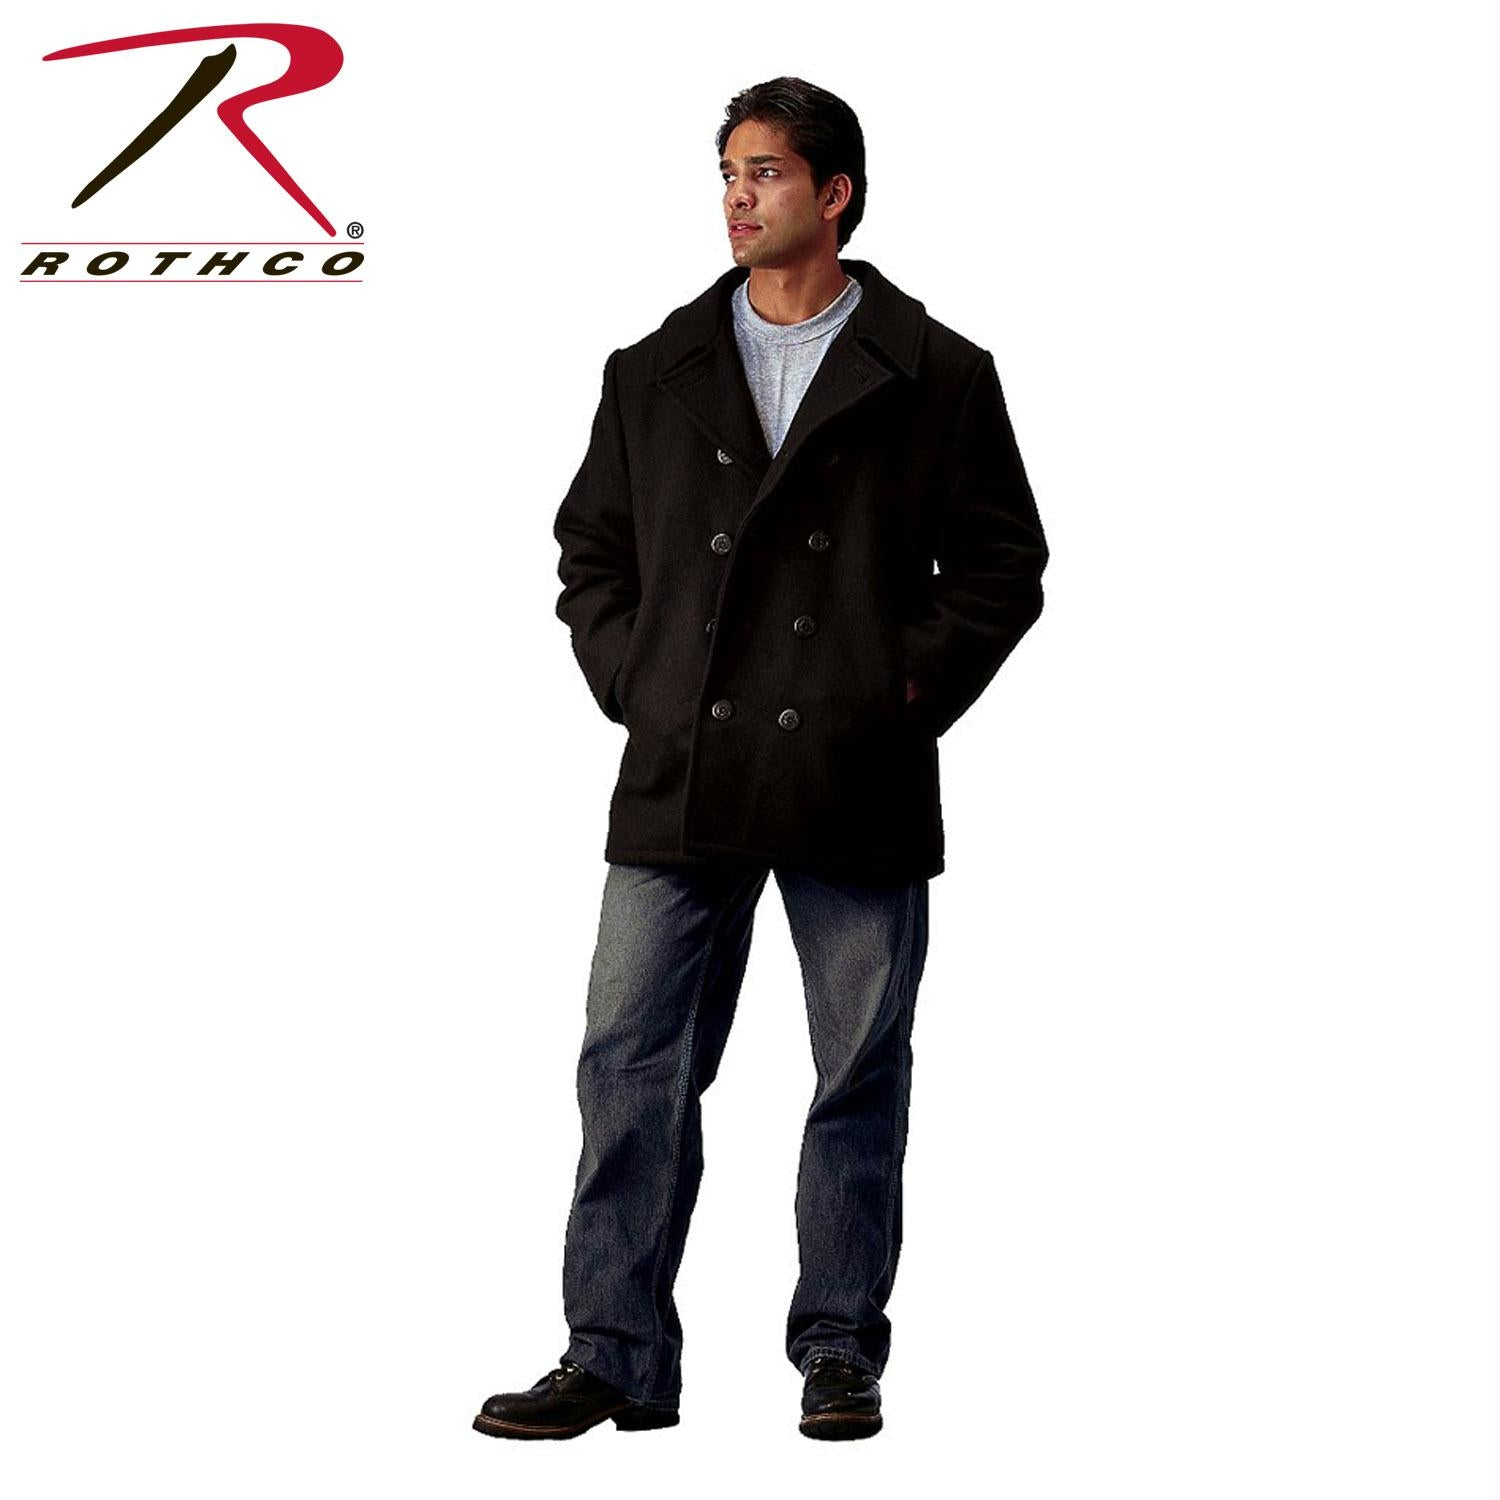 Rothco US Navy Type Pea Coat - Black / L